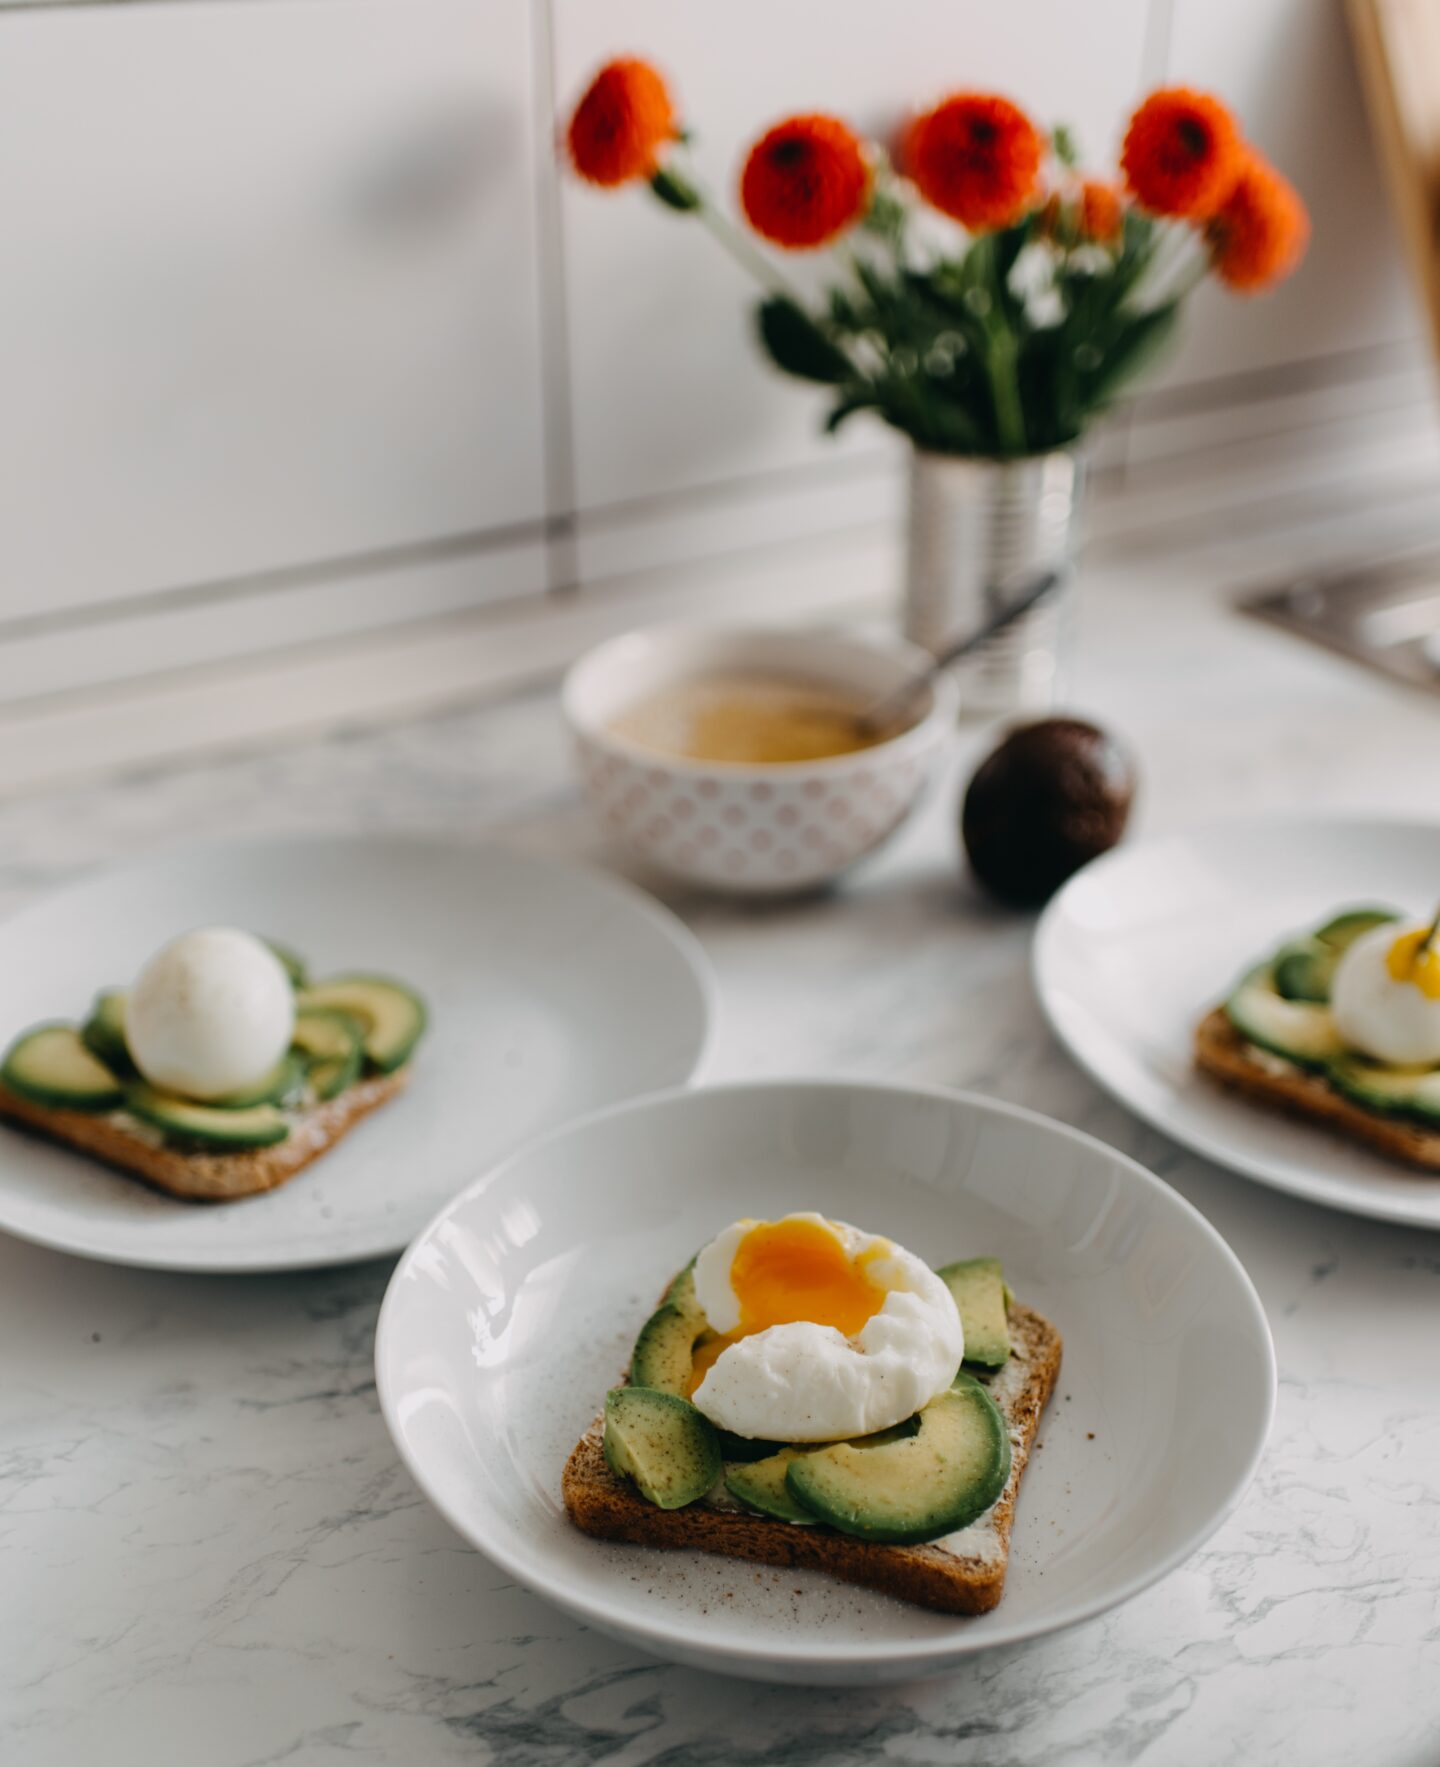 Avocado toast is an amazing meal and easy snack as well - naturally thin women practice portion control with all foods